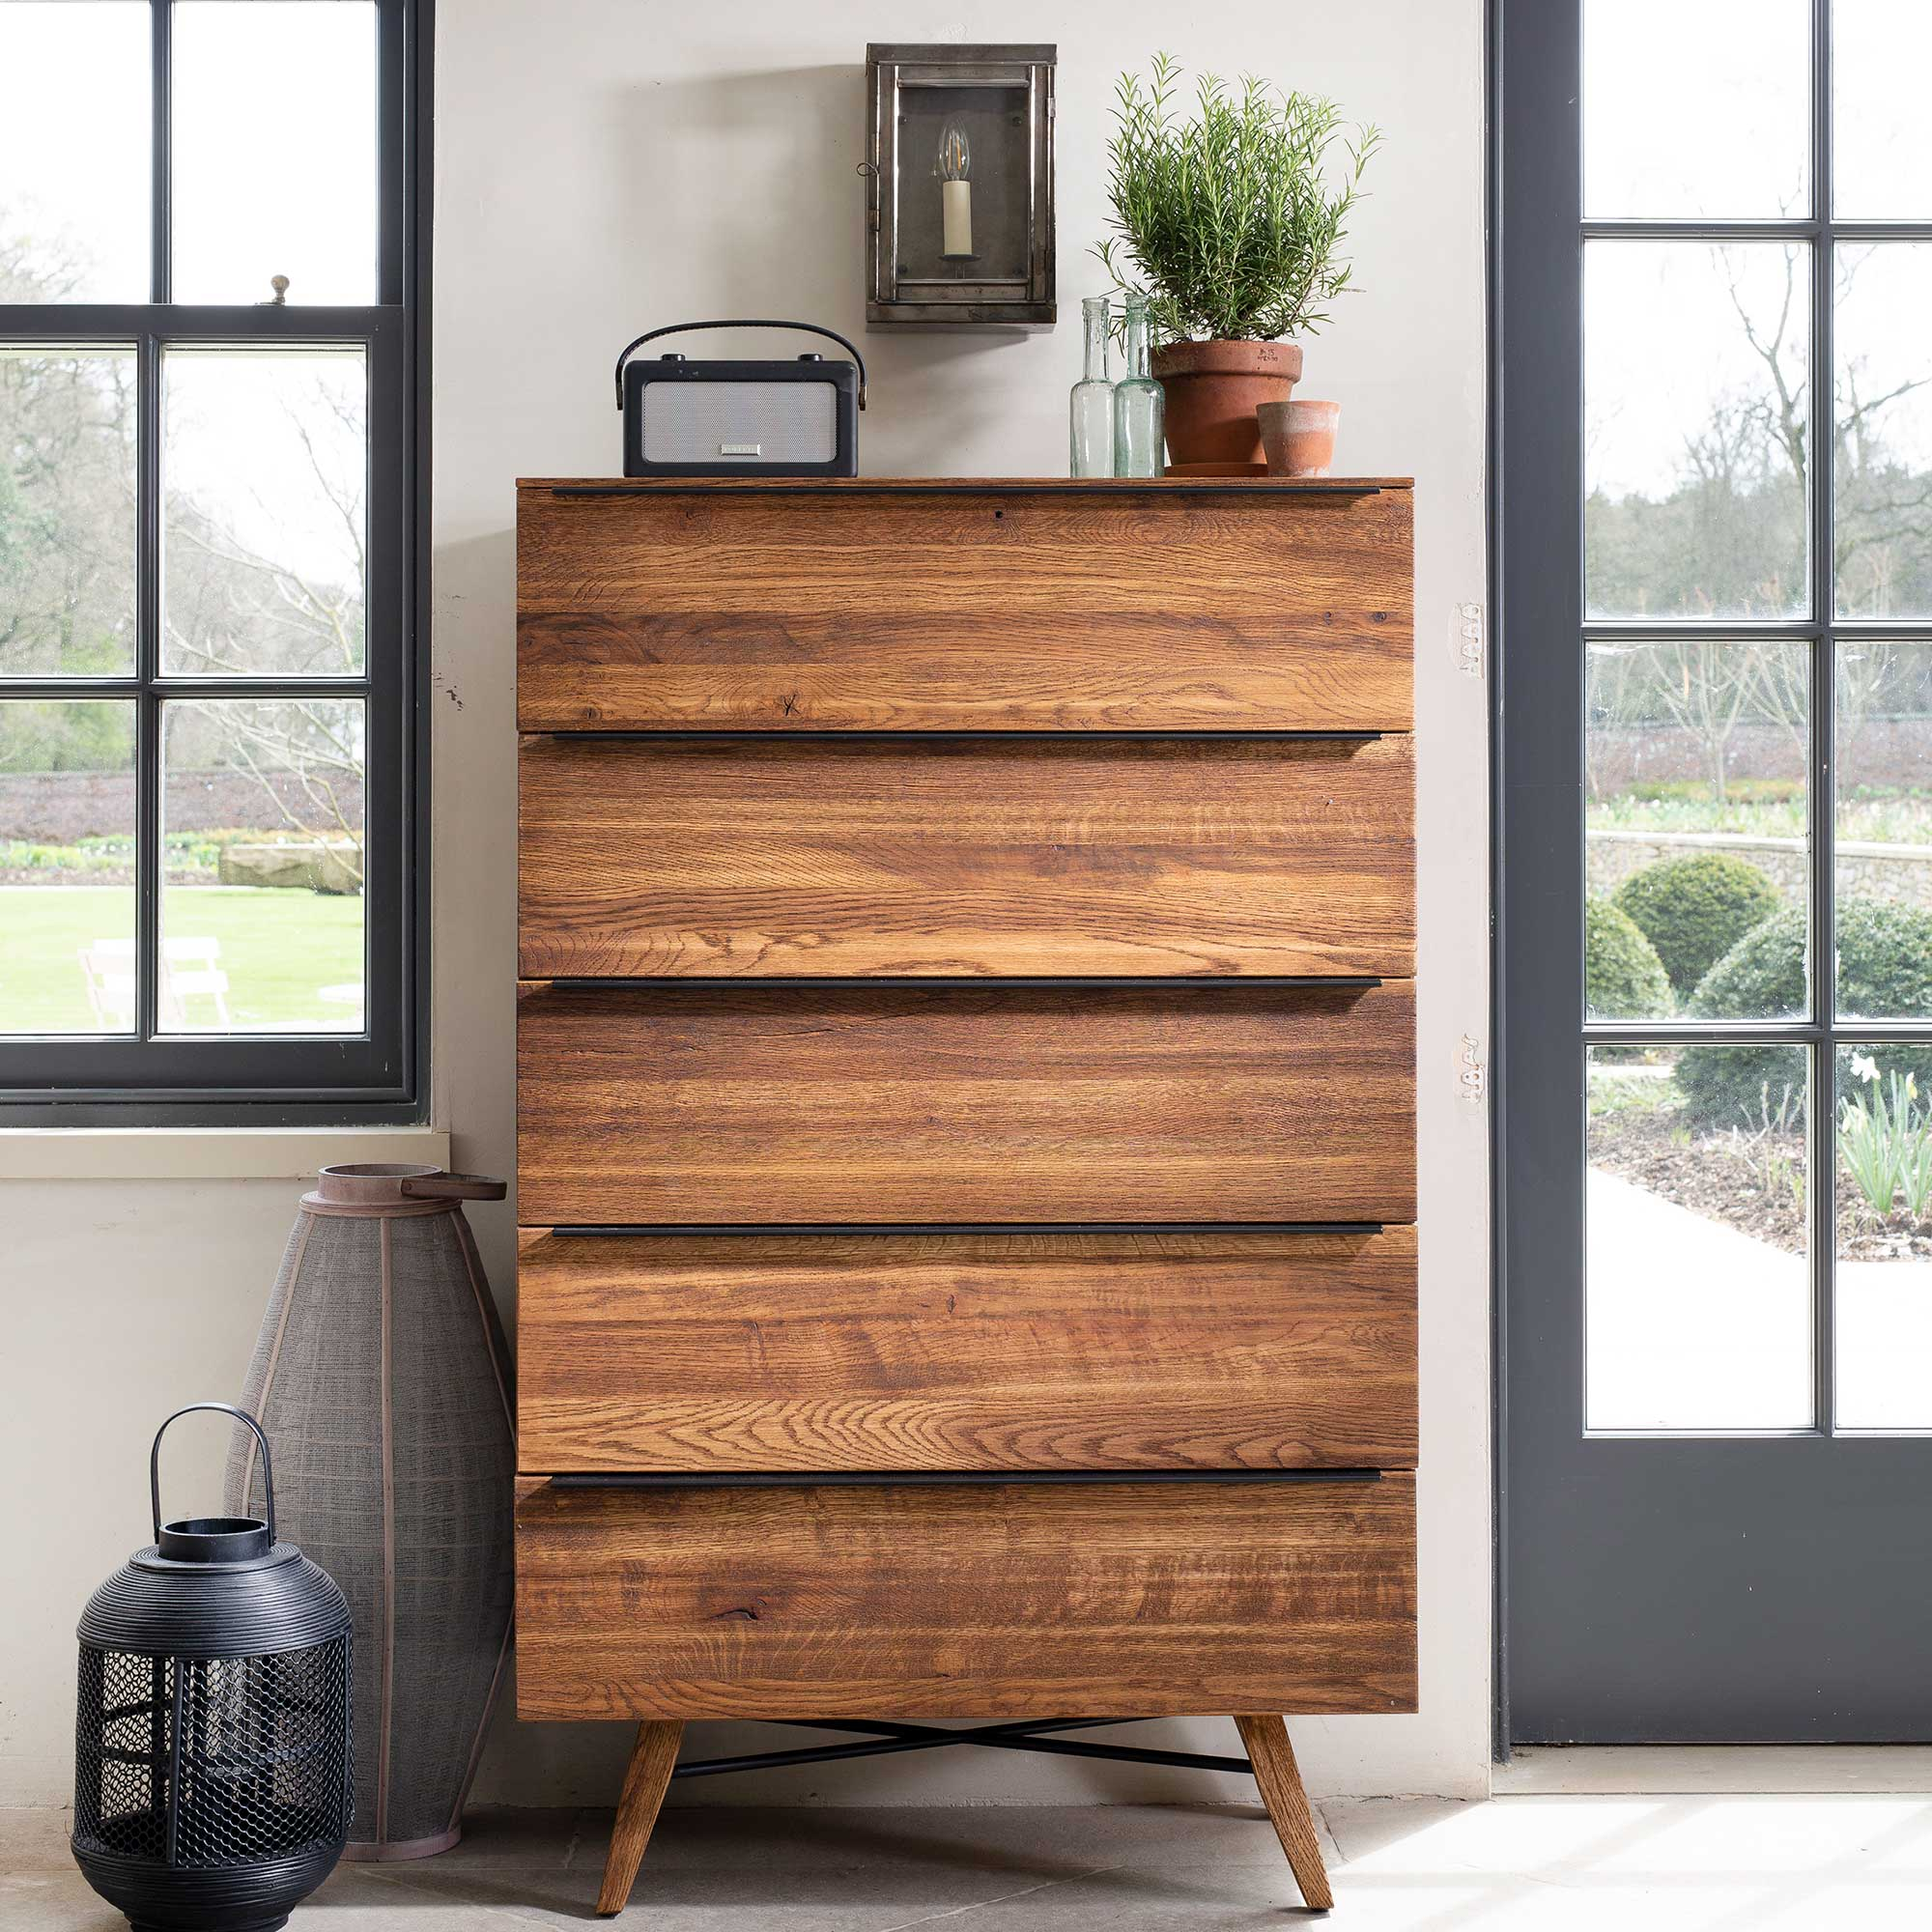 CORMAR TALL CHEST - L82cm x D45cm x H131cm